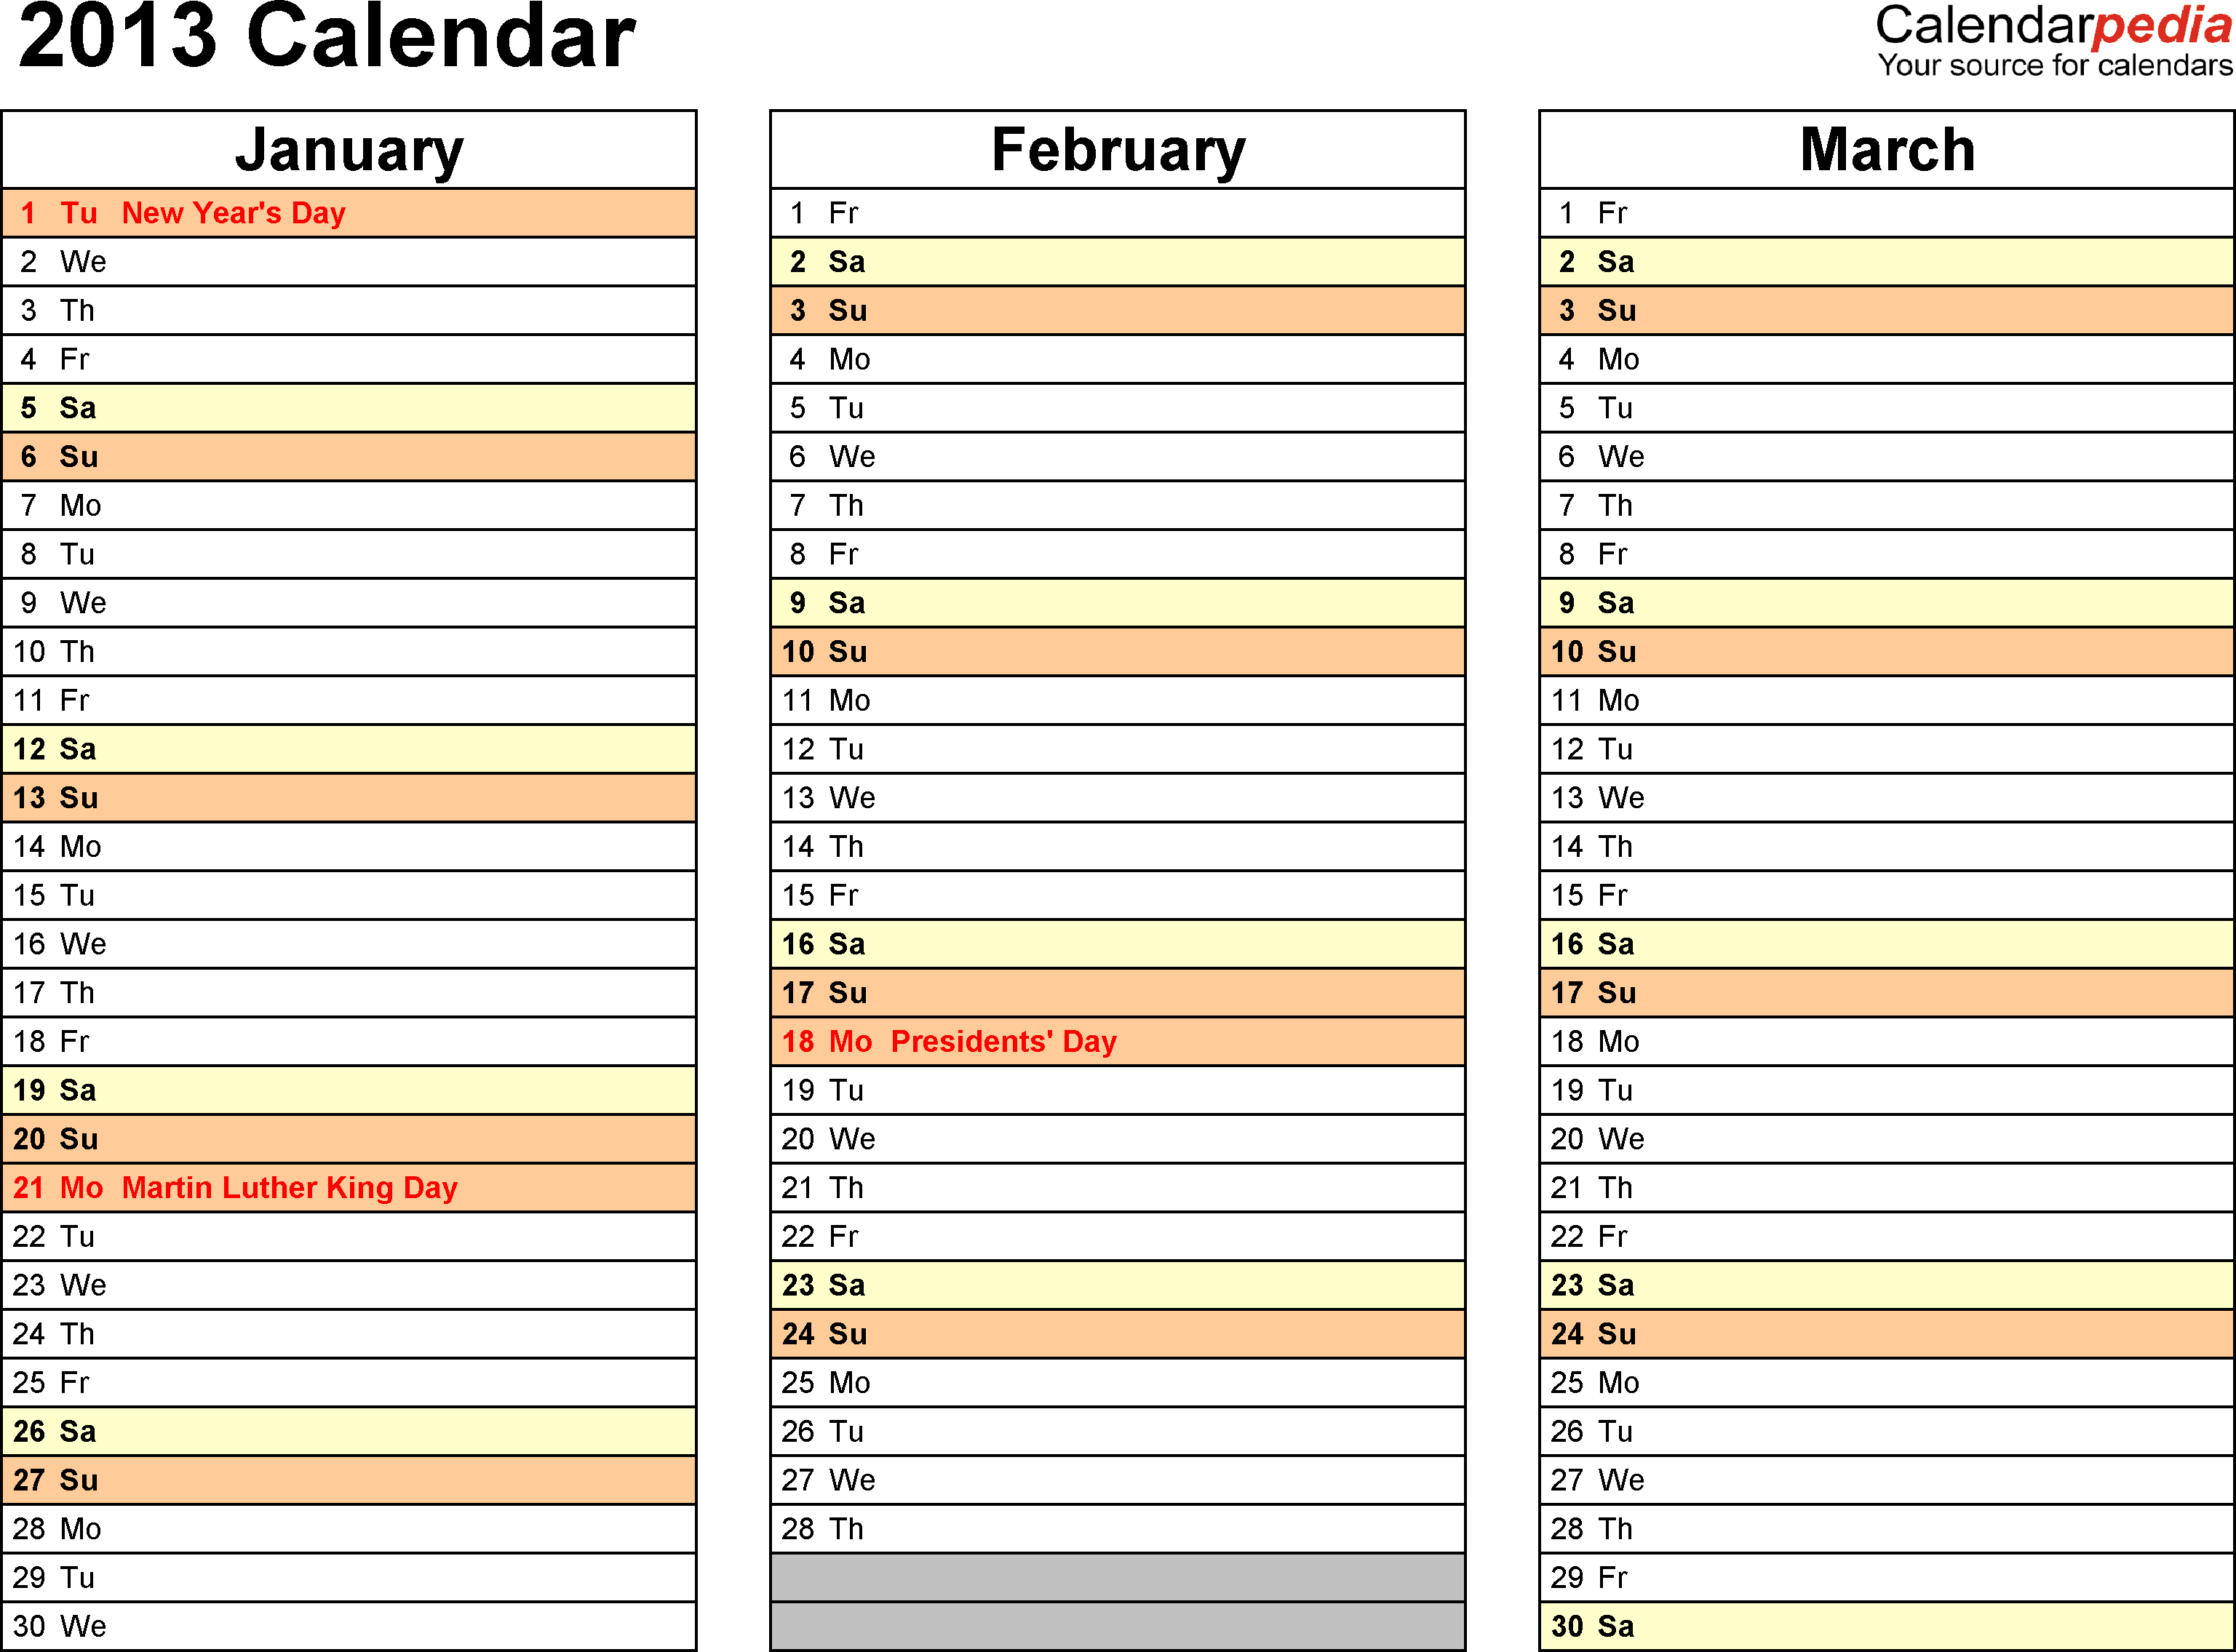 Download Word template for 2013 calendar template 6: landscape orientation, 4 pages, months horizontally, days vertically